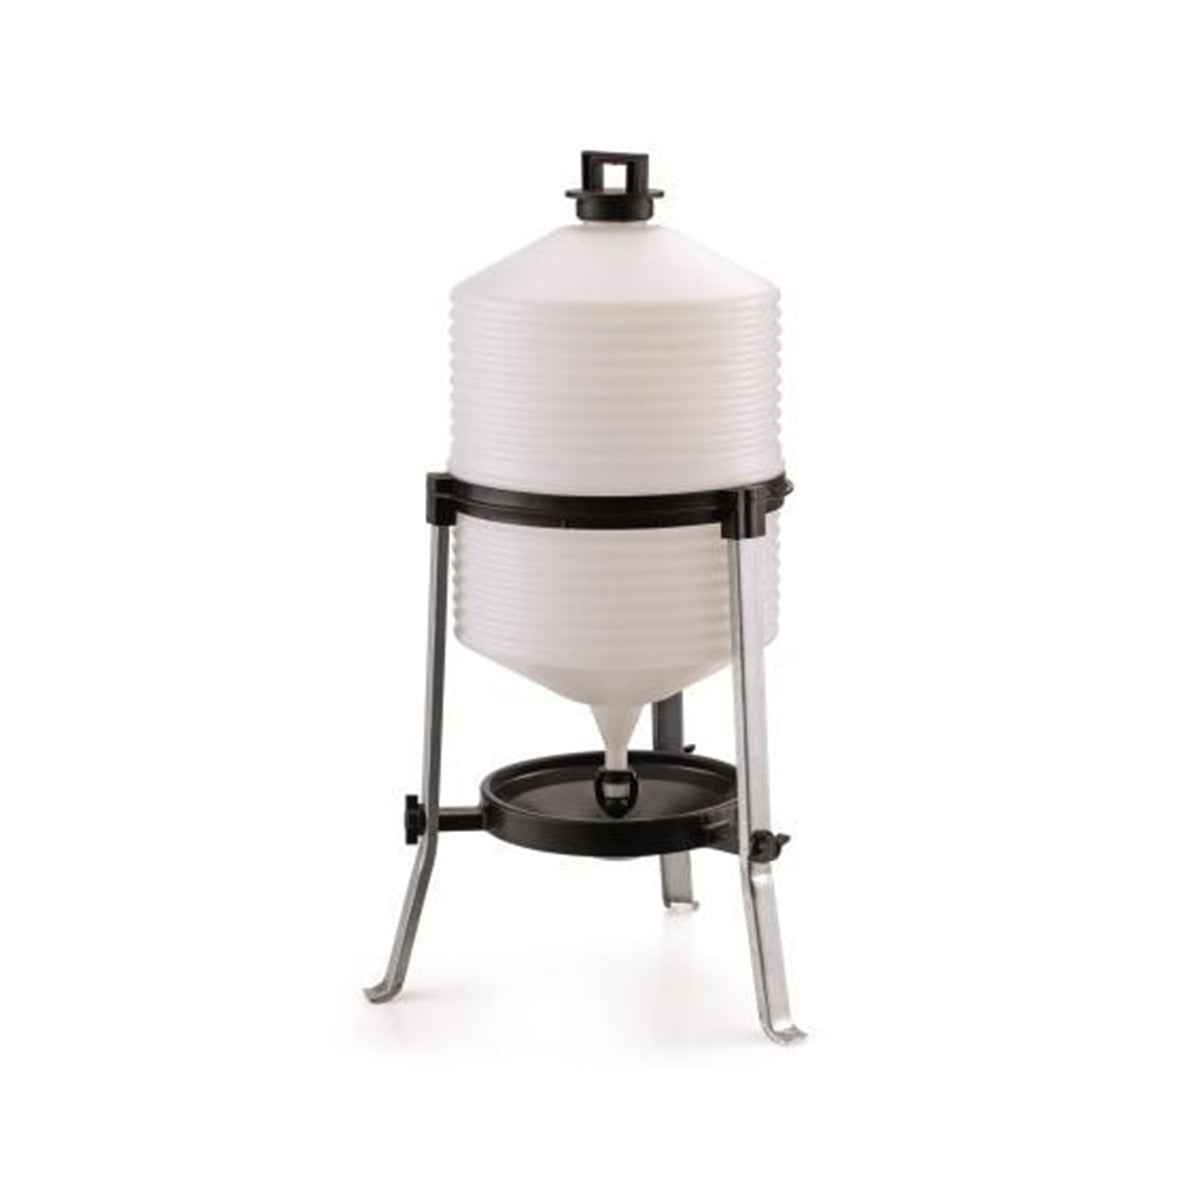 Constant Level Tripod Drinker - Urban-Egg - Poultry Roll Away Nest Boxes, Chicken Feeders, and More